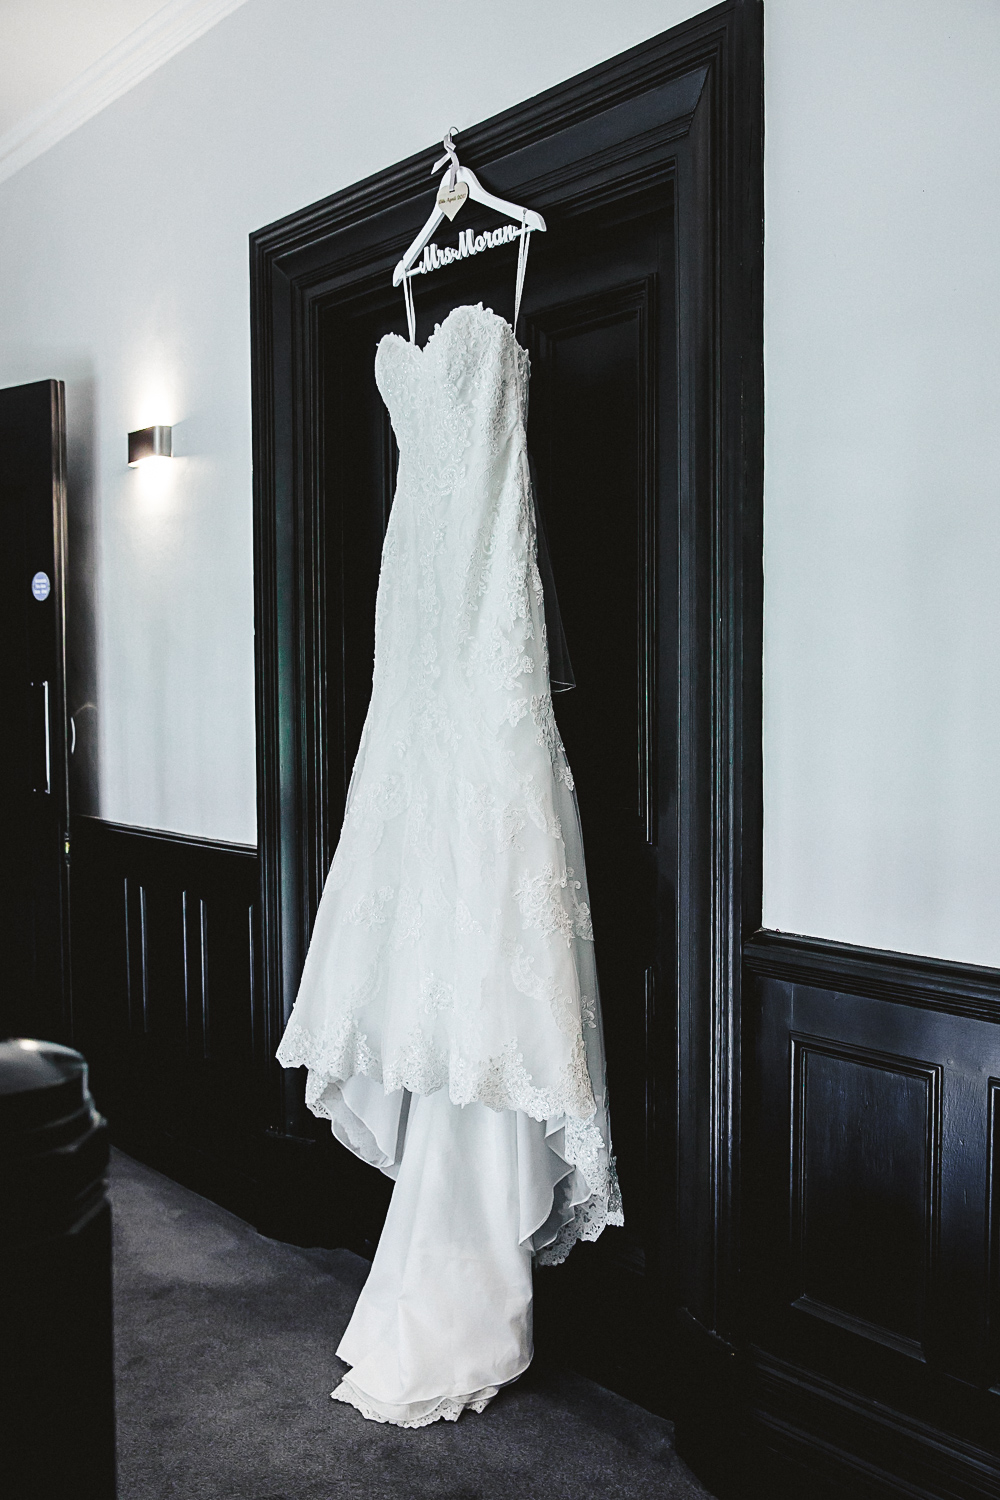 Bridal Dress at Swynford Manor Wedding